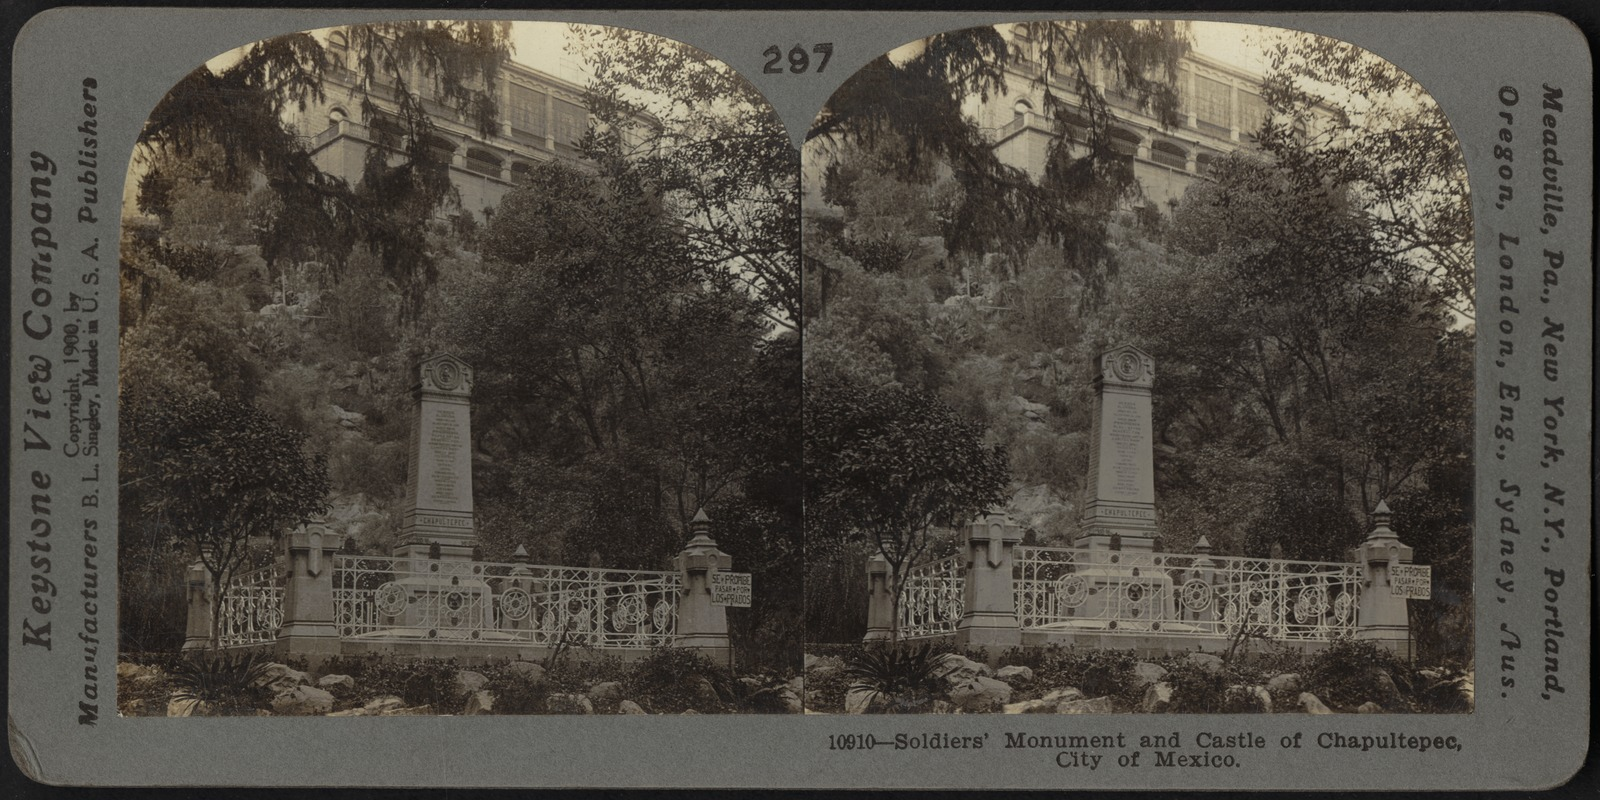 Soldiers' monument and Castle of Chapultapec, City of Mexico, Mexico